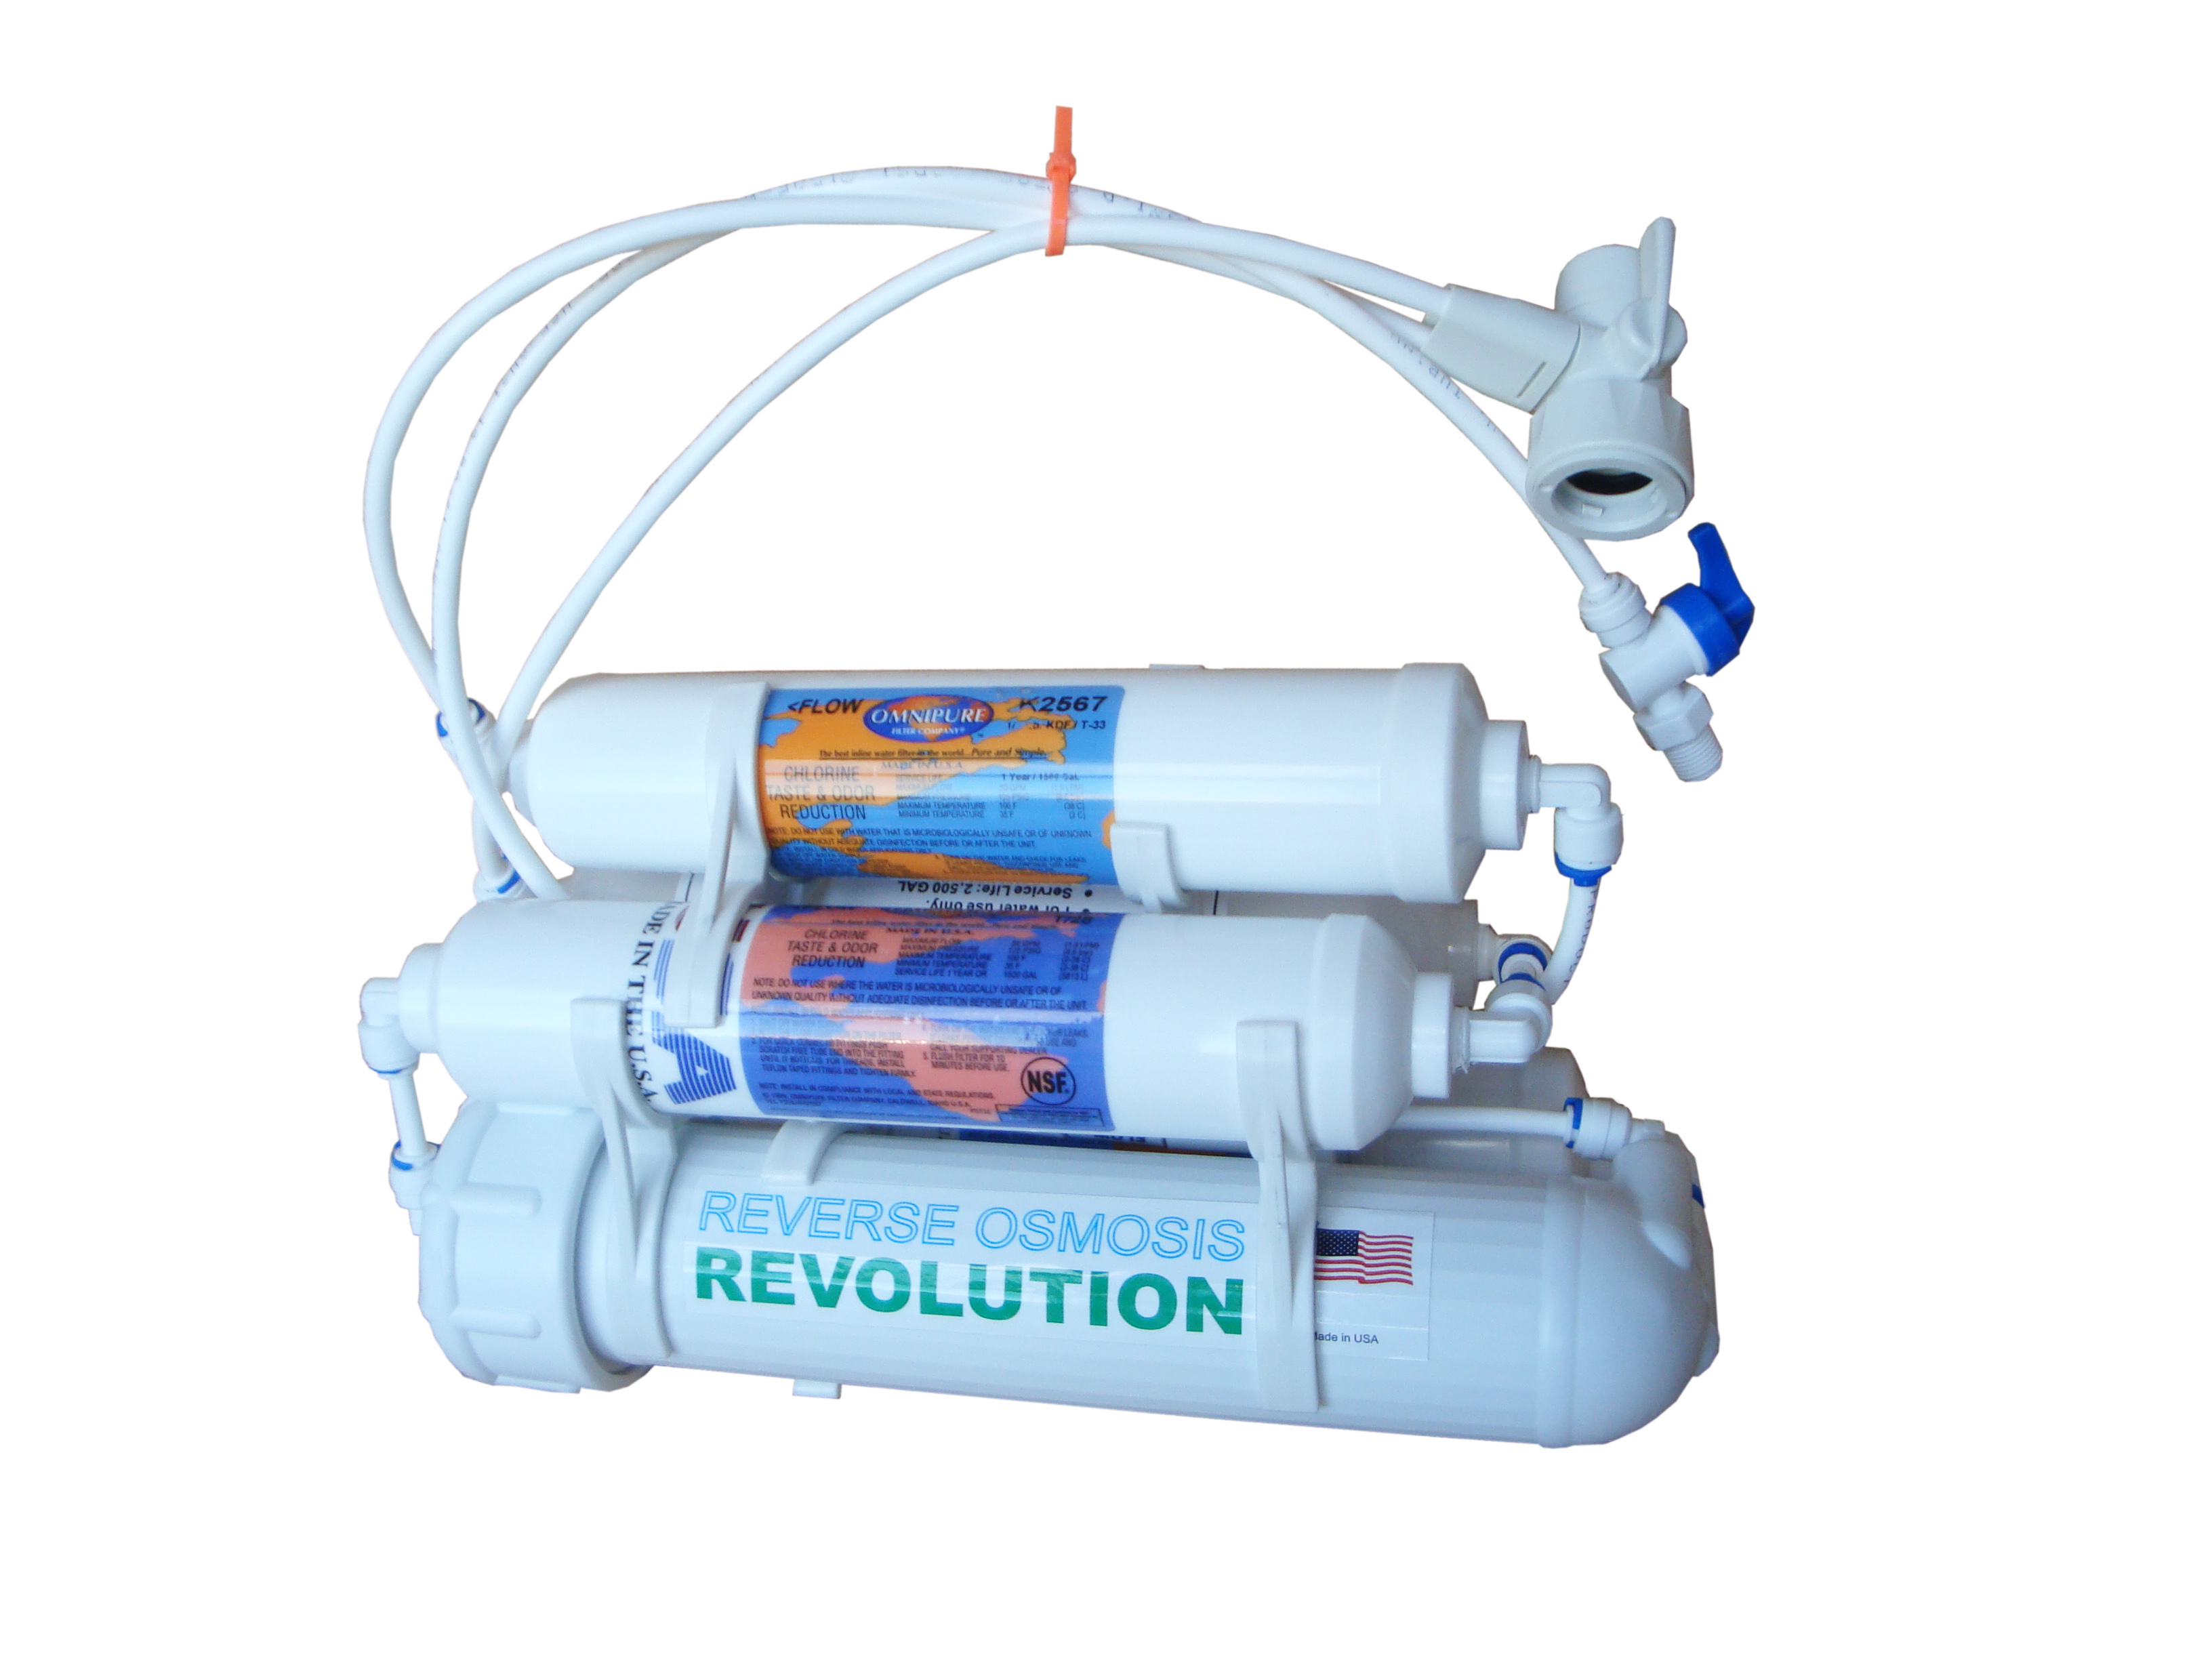 Antibacterial Universal 5-stage Reverse Osmosis Revolution Water Purification System with super KDF-55 and Deionizing Bed Filter, 75/100/150 GPD membrane